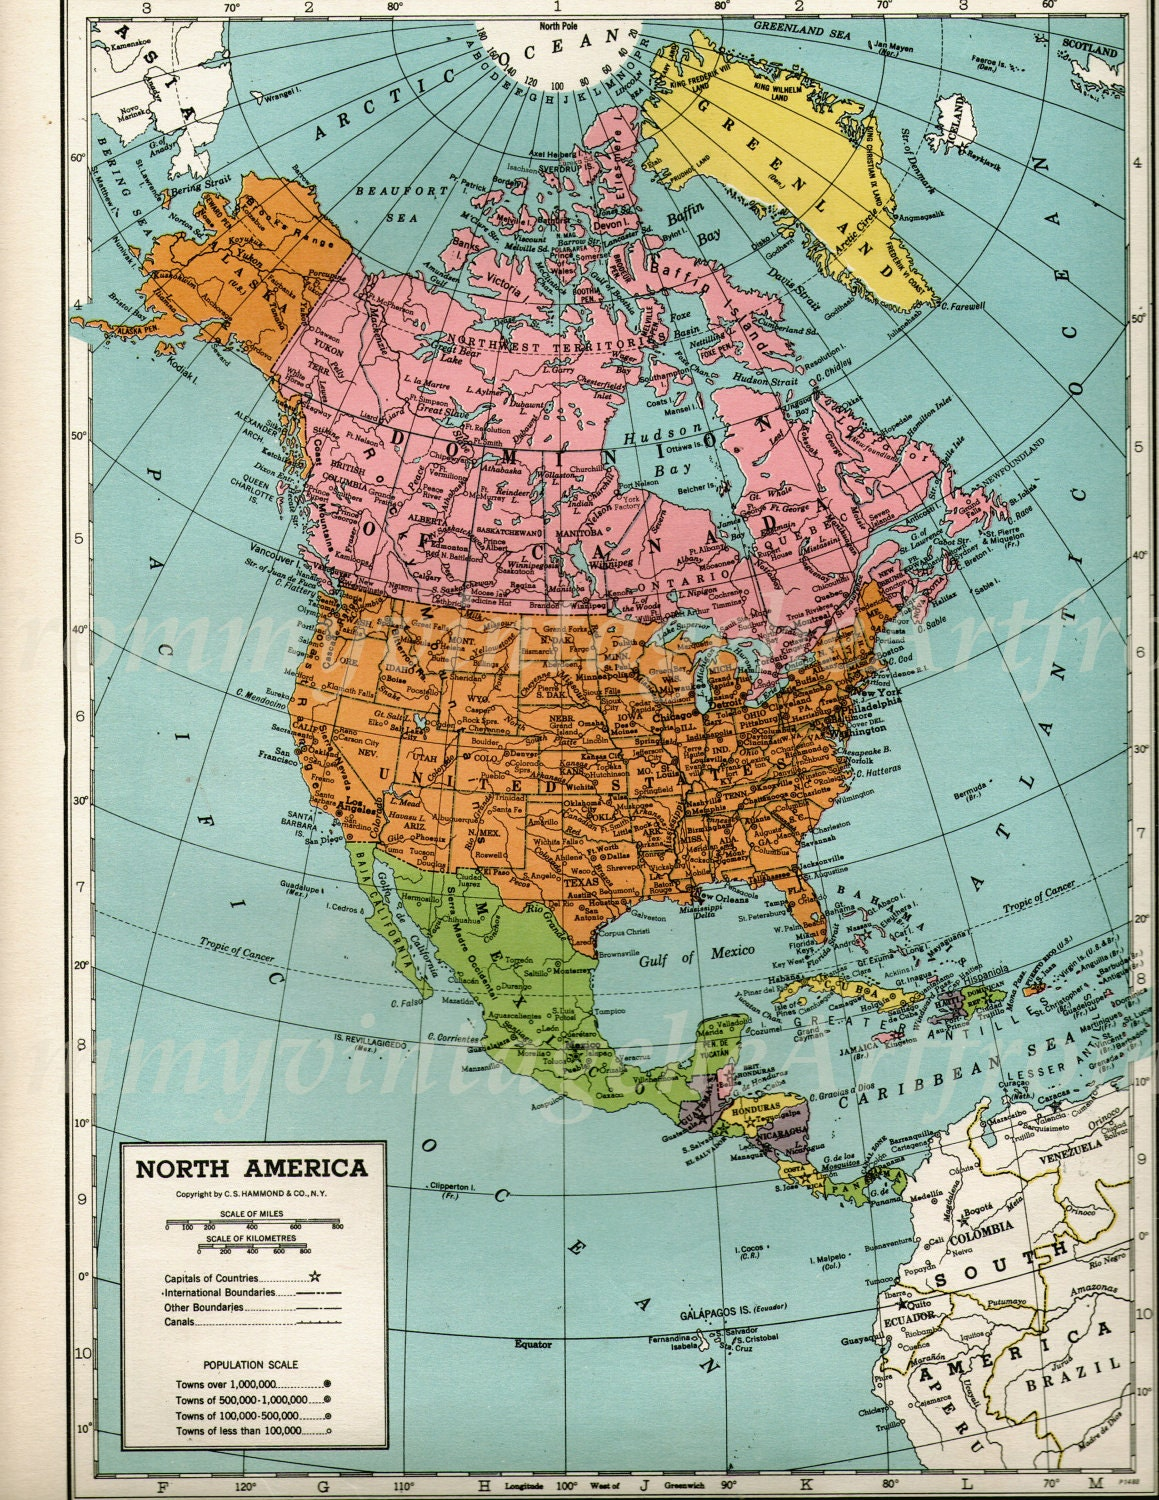 Usa Map Bing Images United States Blank Map US State Wikipedia - Full map of usa states